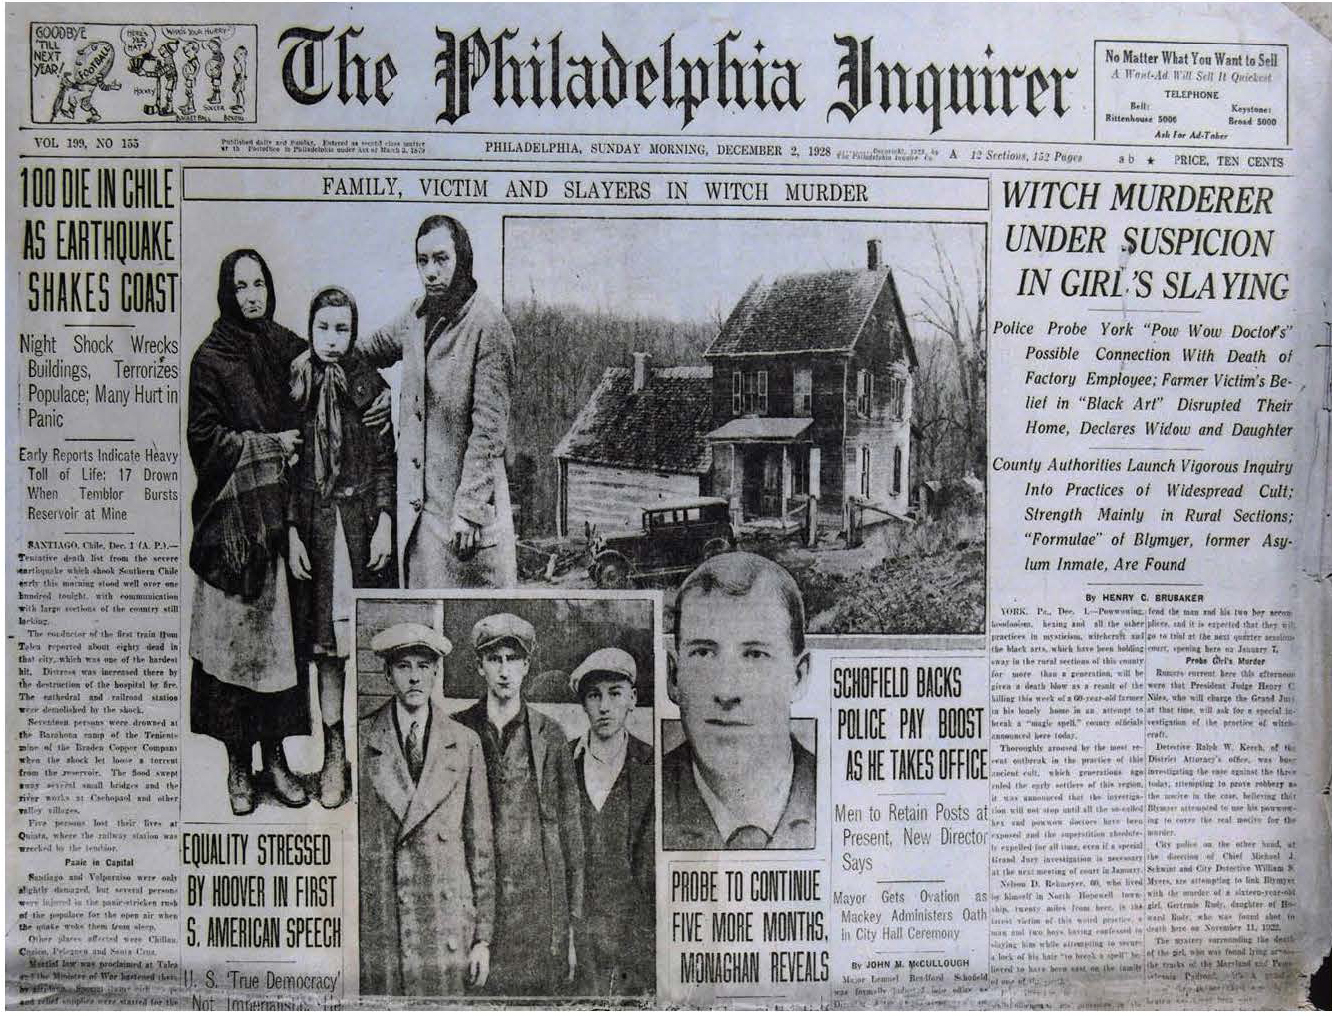 """Figure 27: York Hex Murder Media Coverage 1929,  Philadelphia Inquirer . Heilman Collection of Patrick J. Donmoyer.  Media coverage appeared on a national scale in the wake of the murder of Nelson Rehmeyer in York County, dubbed the """"Hex Murder."""" The murderer, John Blymire, an escapee from a mental asylum, was convinced that Rehmeyer had placed a curse upon him. In an attempt to break the """"hex"""" by obtaining a lock of hair or Rehmeyer's copy of John George Hohman's  Long Lost Friend , Blymire and two accomplices John Curry and Wilbur Hess killed Rehmeyer on the night of Thanksgiving in 1928. The trial drew national media attention to the persistence of beliefs associated with powwow in Pennsylvania; however, this media attention was heavily biased, and promoted many negative, false, and culturally insensitive stereotypes about the Pennsylvania Dutch people. The incident is often indicated as the single-most defining moment in Pennsylvania's anti-powwow crusade, which swept across the state. Threats from lawmakers, physicians' councils, and civic organizations forced traditional healing to be conducted in secrecy for fear of prosecution for practicing medicine without a license."""